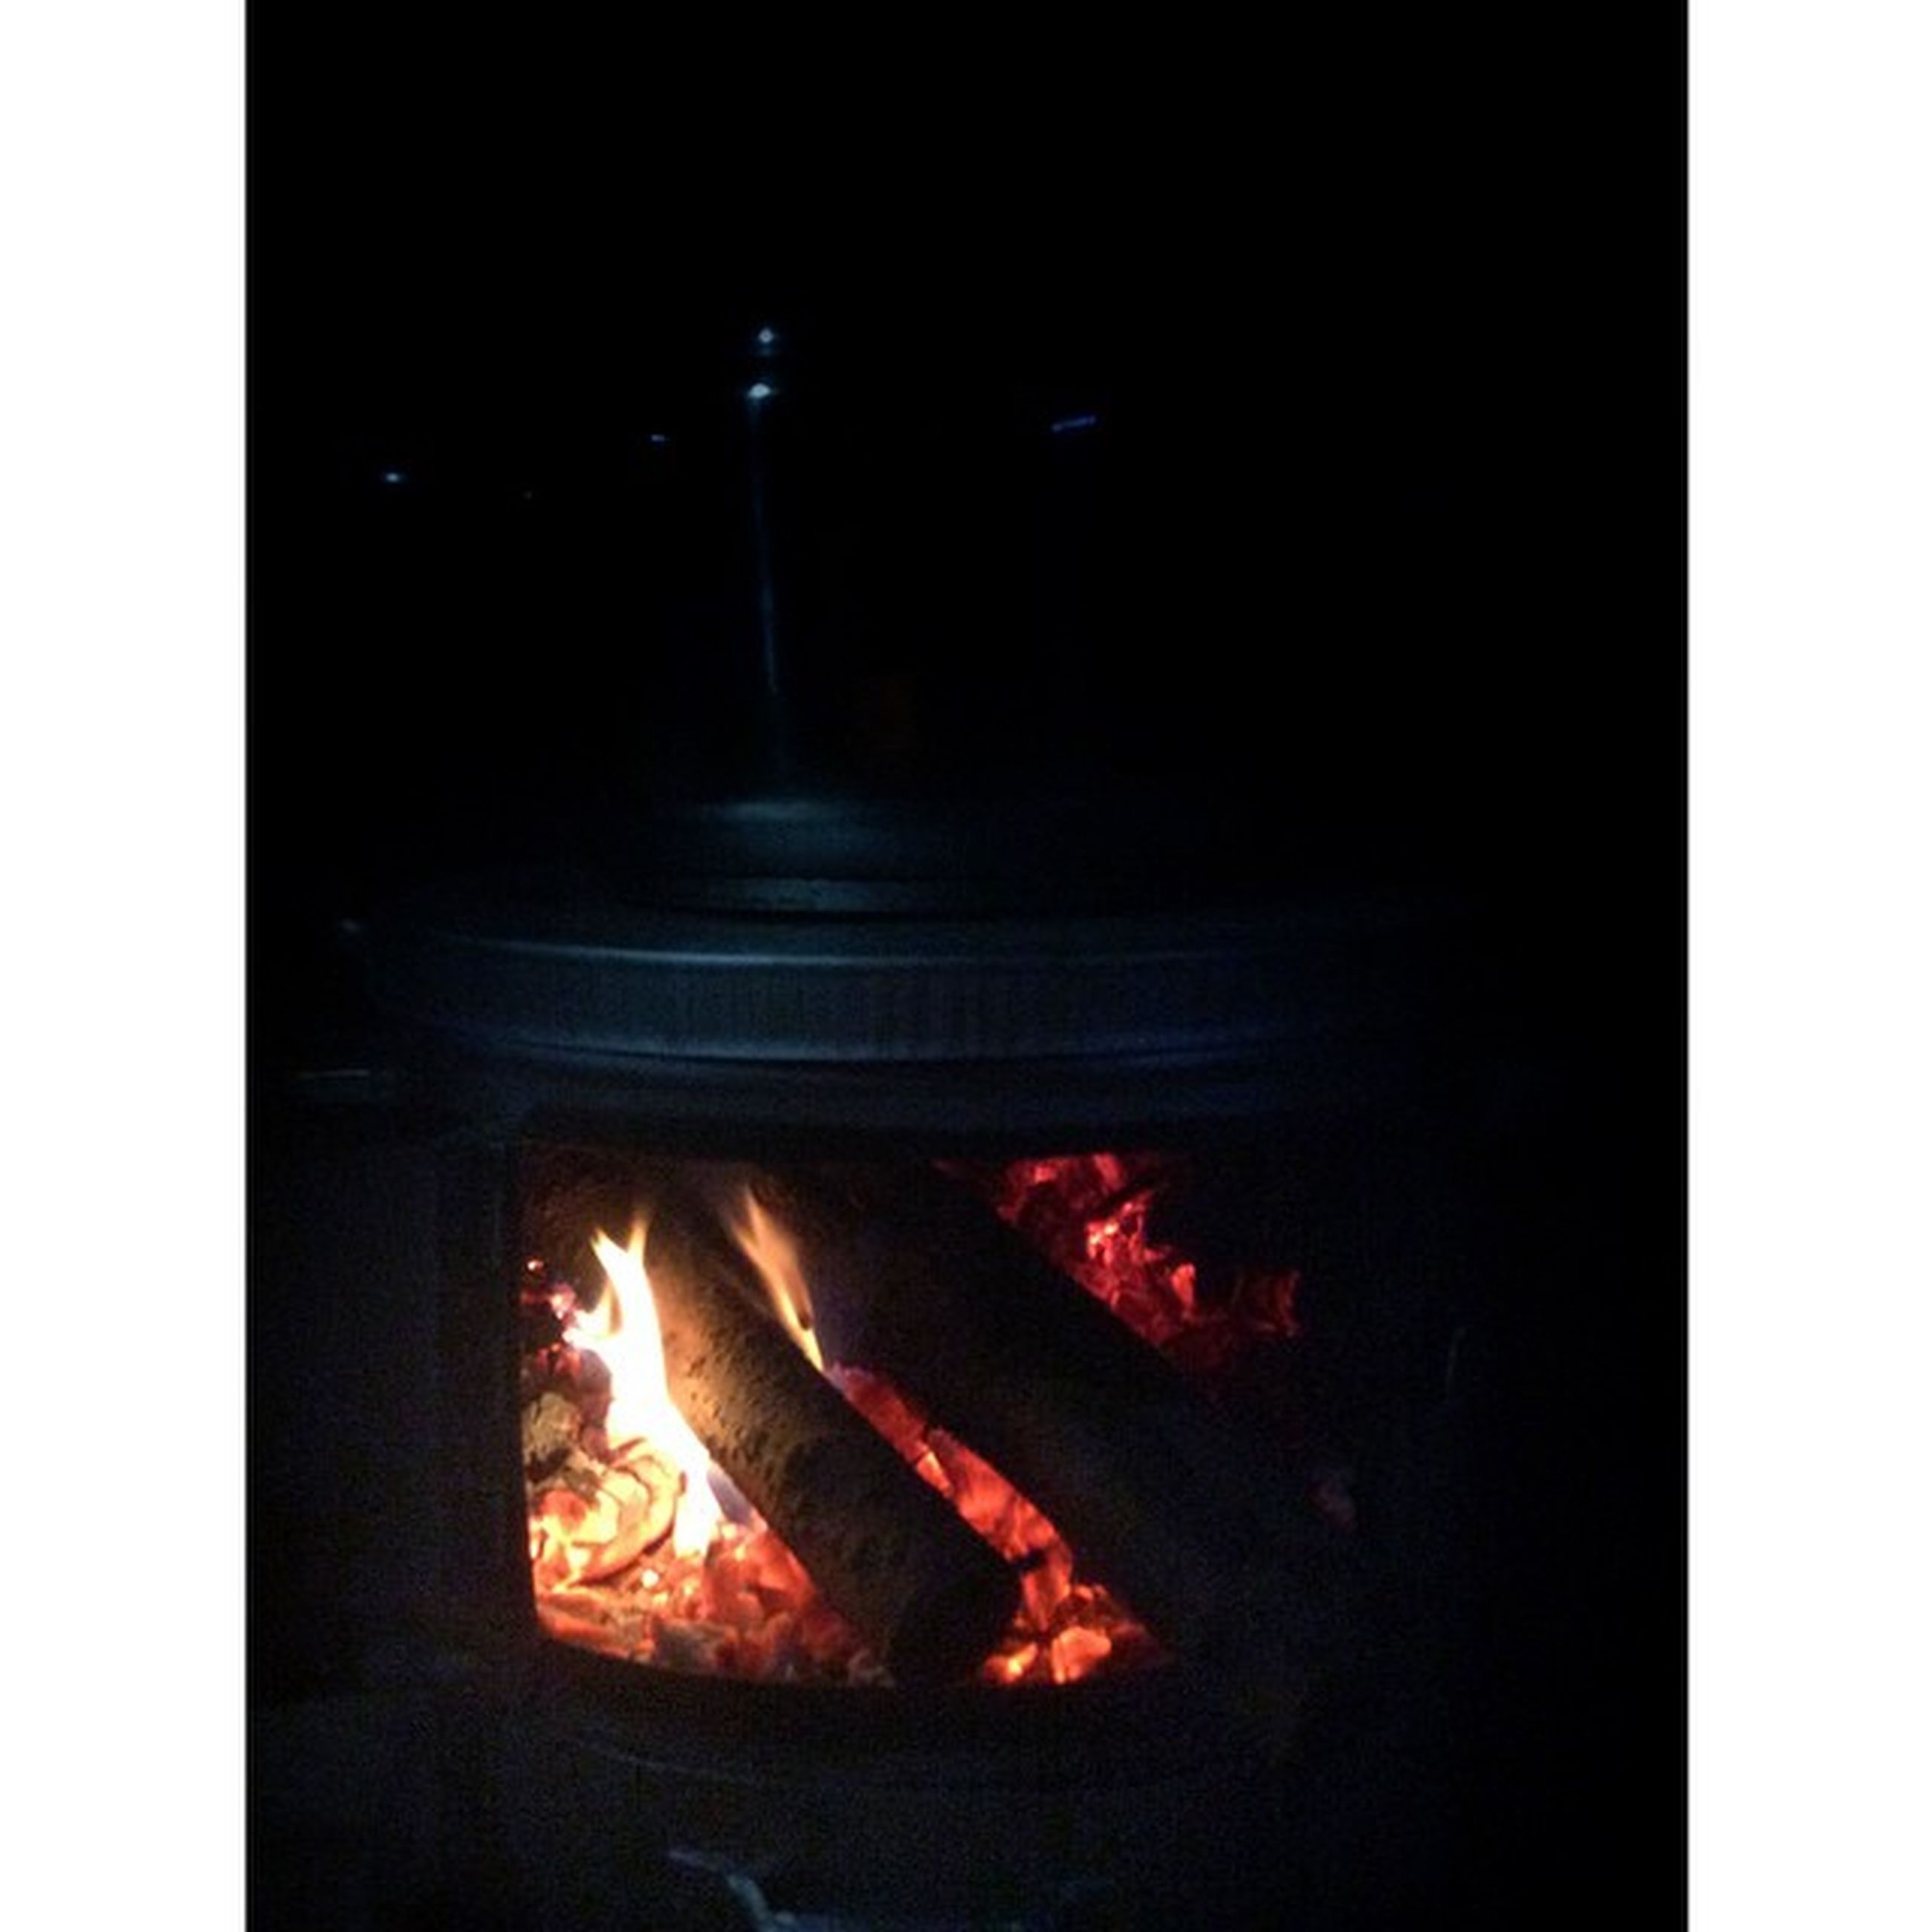 flame, burning, fire - natural phenomenon, heat - temperature, transfer print, fire, bonfire, glowing, firewood, heat, auto post production filter, night, campfire, illuminated, indoors, motion, fireplace, close-up, smoke - physical structure, dark